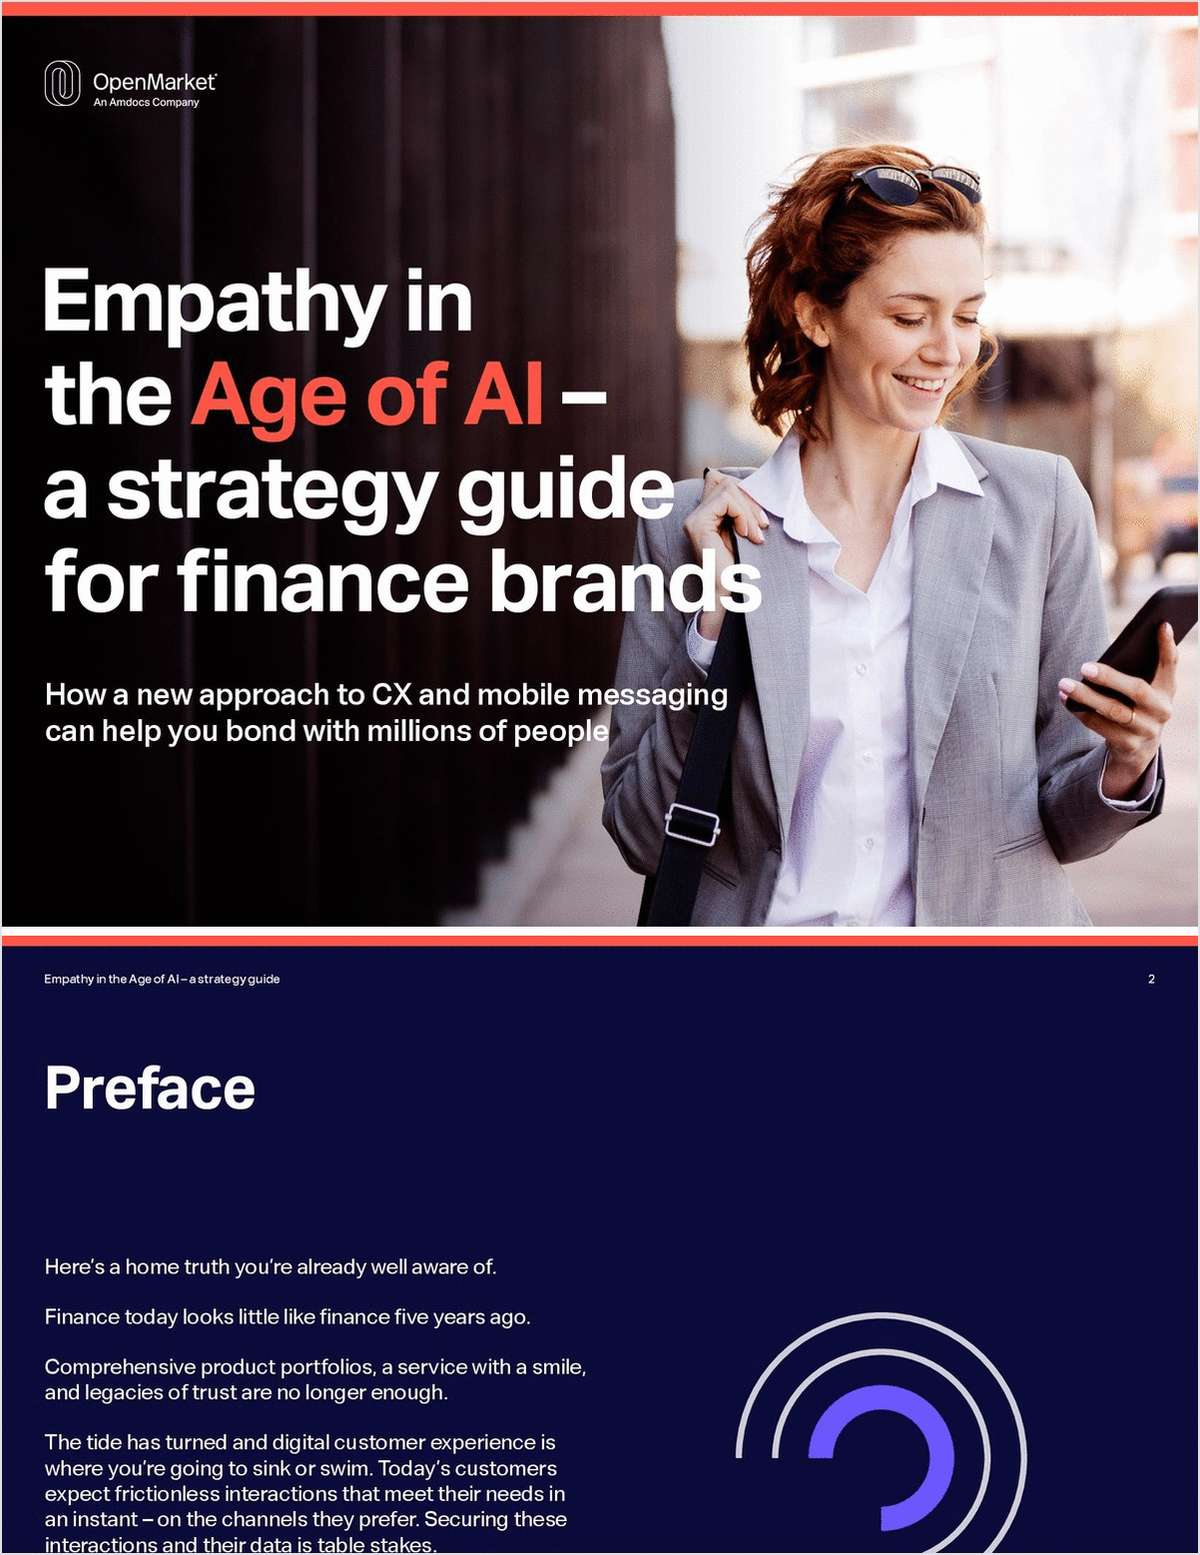 Empathy in the Age of AI: Strategy Guide for Finance Brands